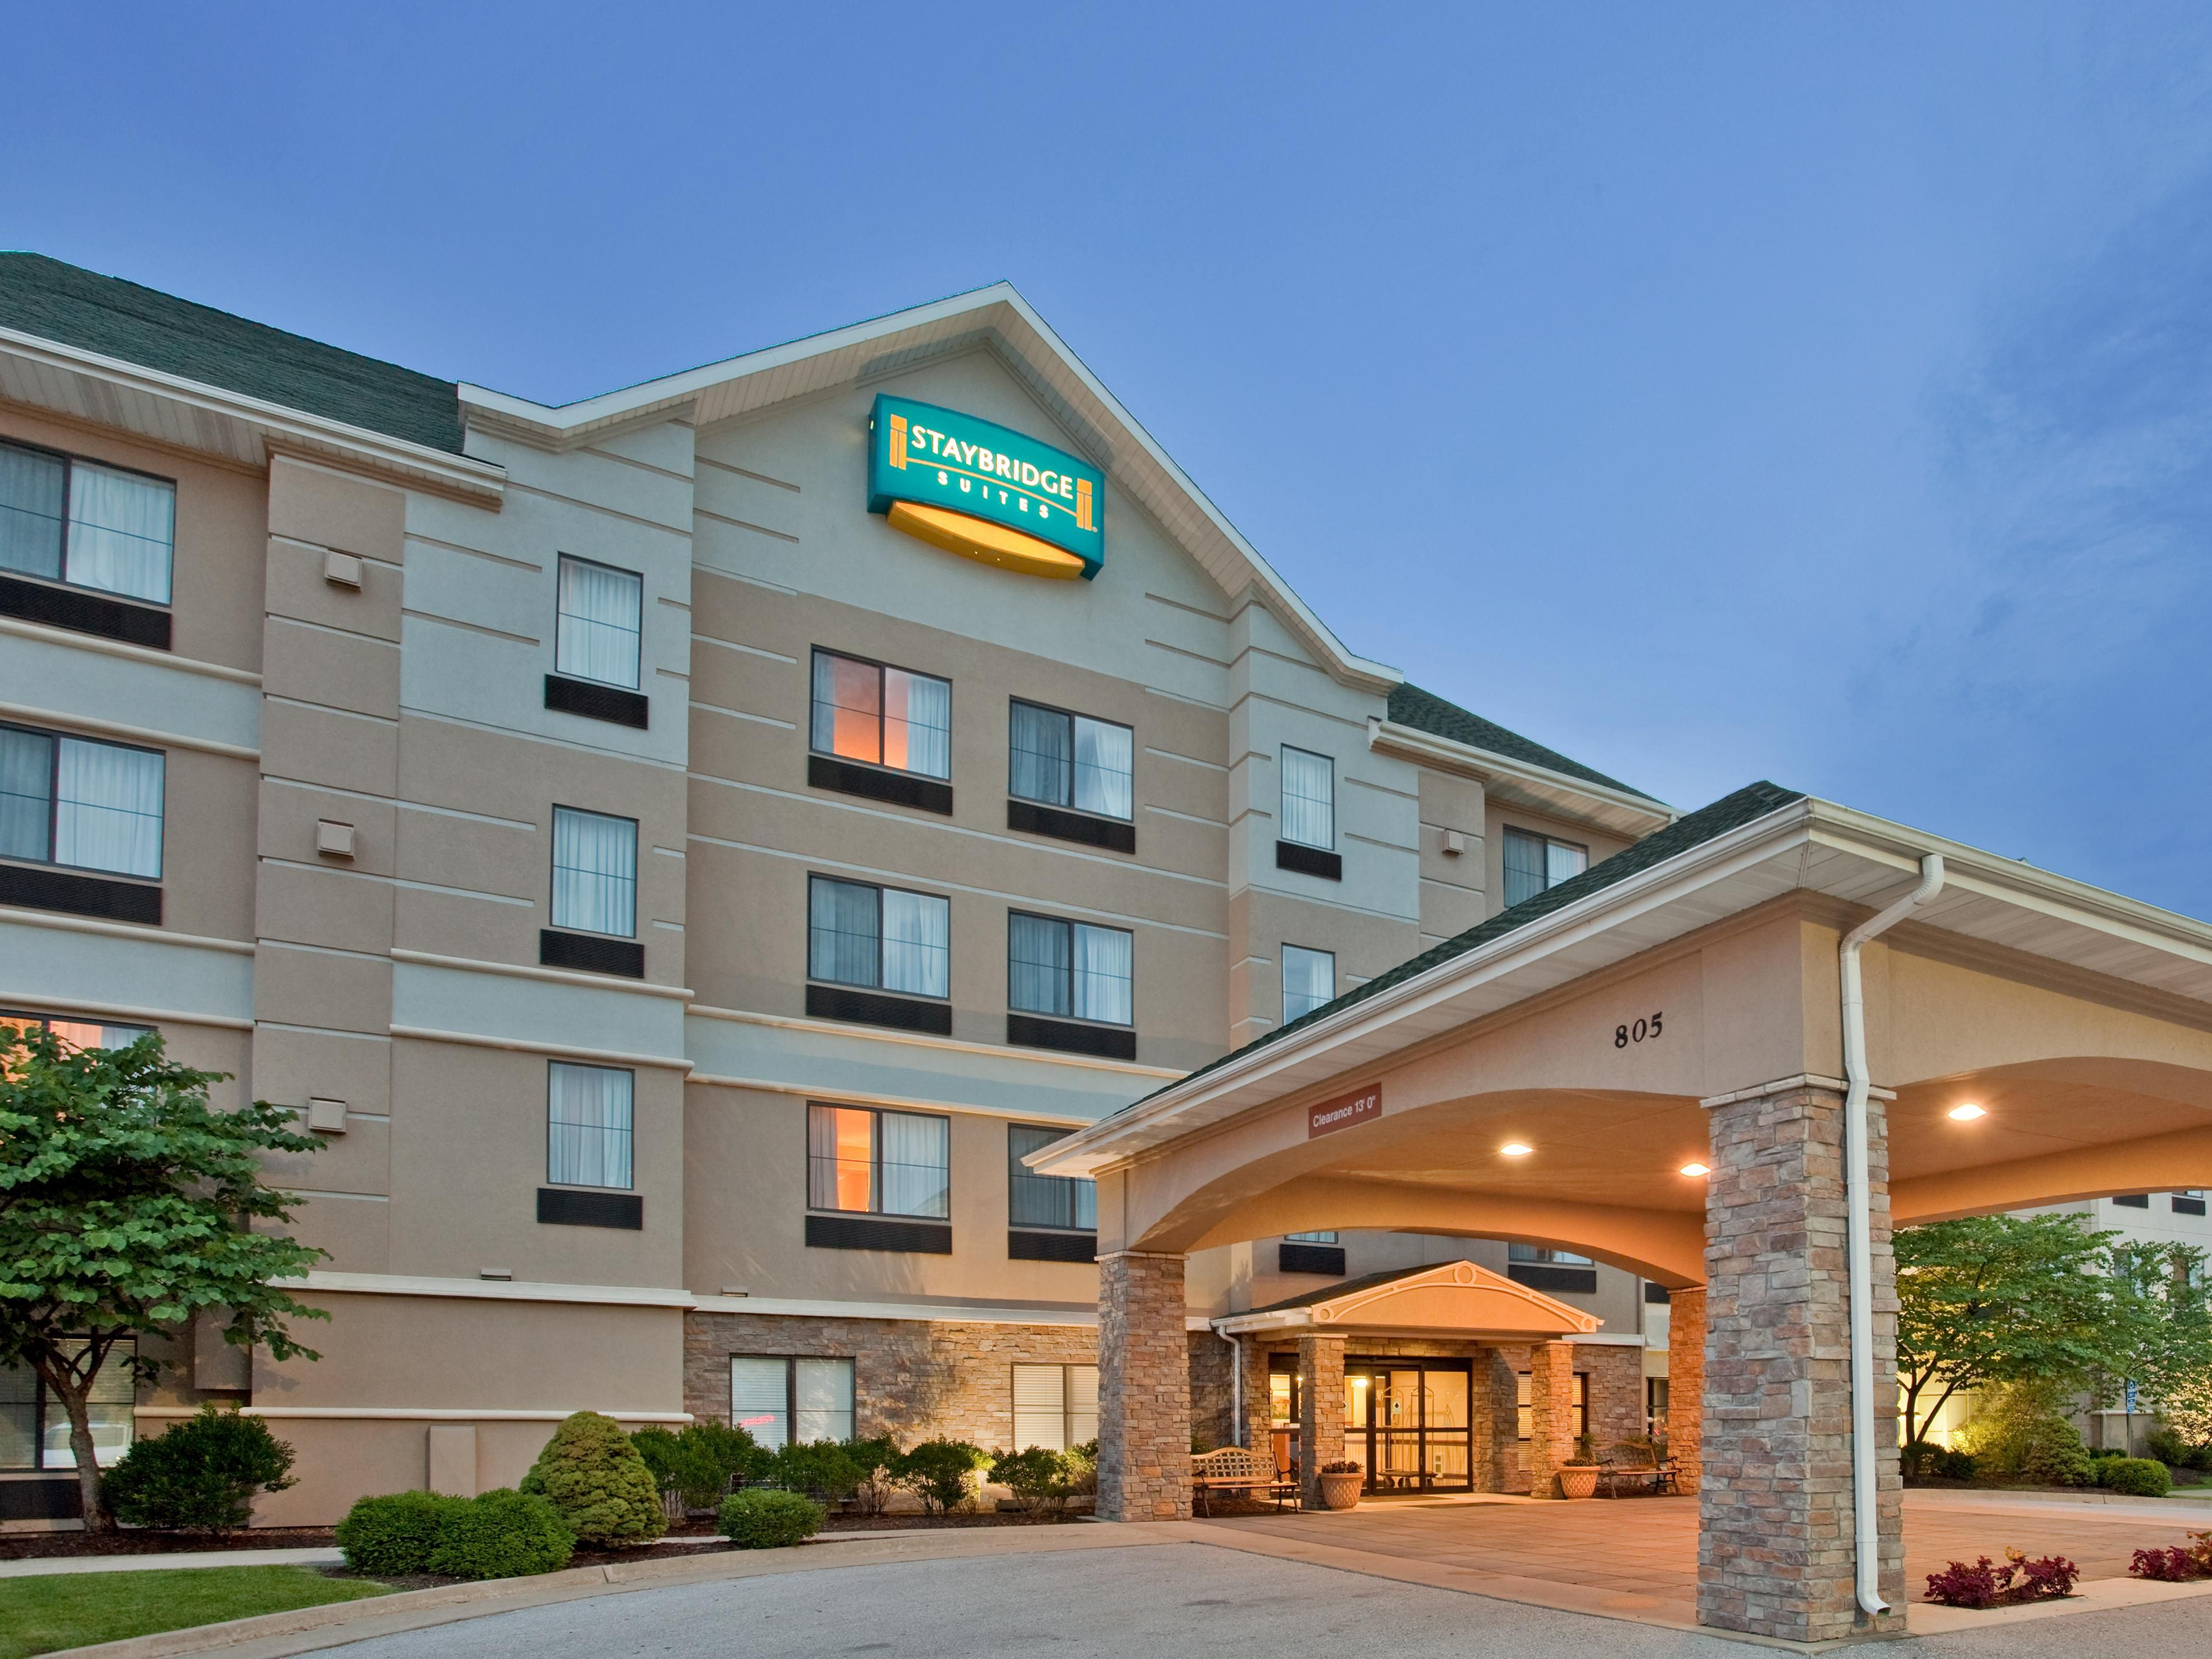 Staybridge Suites Columbia Hwy 63 I 70 Extended Stay Hotel In United States With Full Kitchen